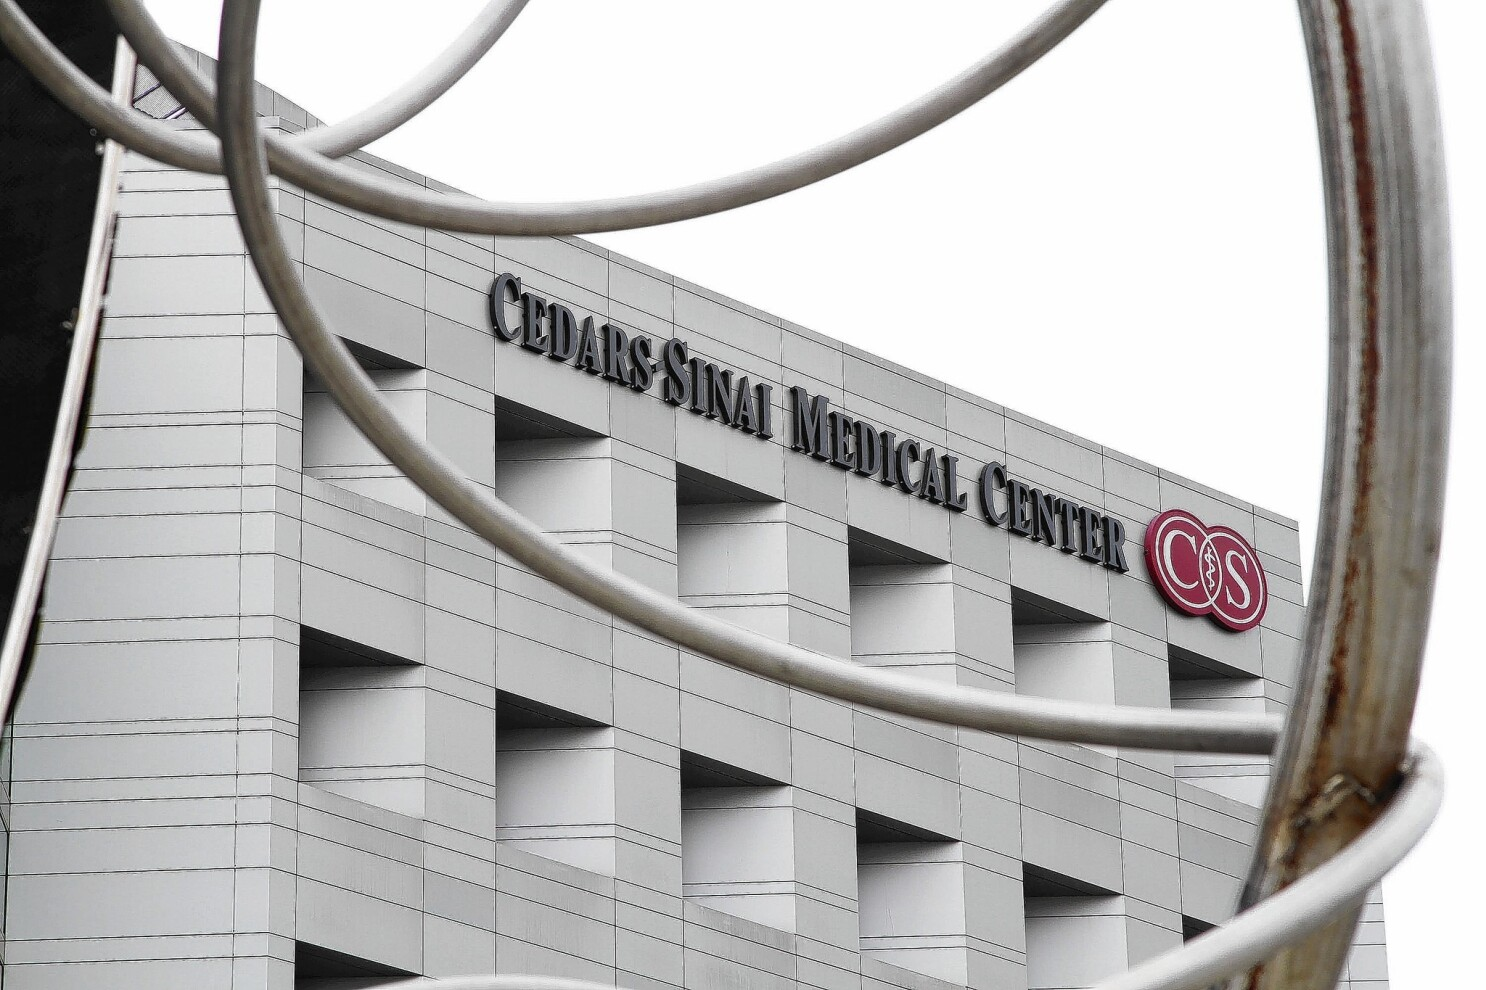 Cedars-Sinai reports possible breach of patients' medical